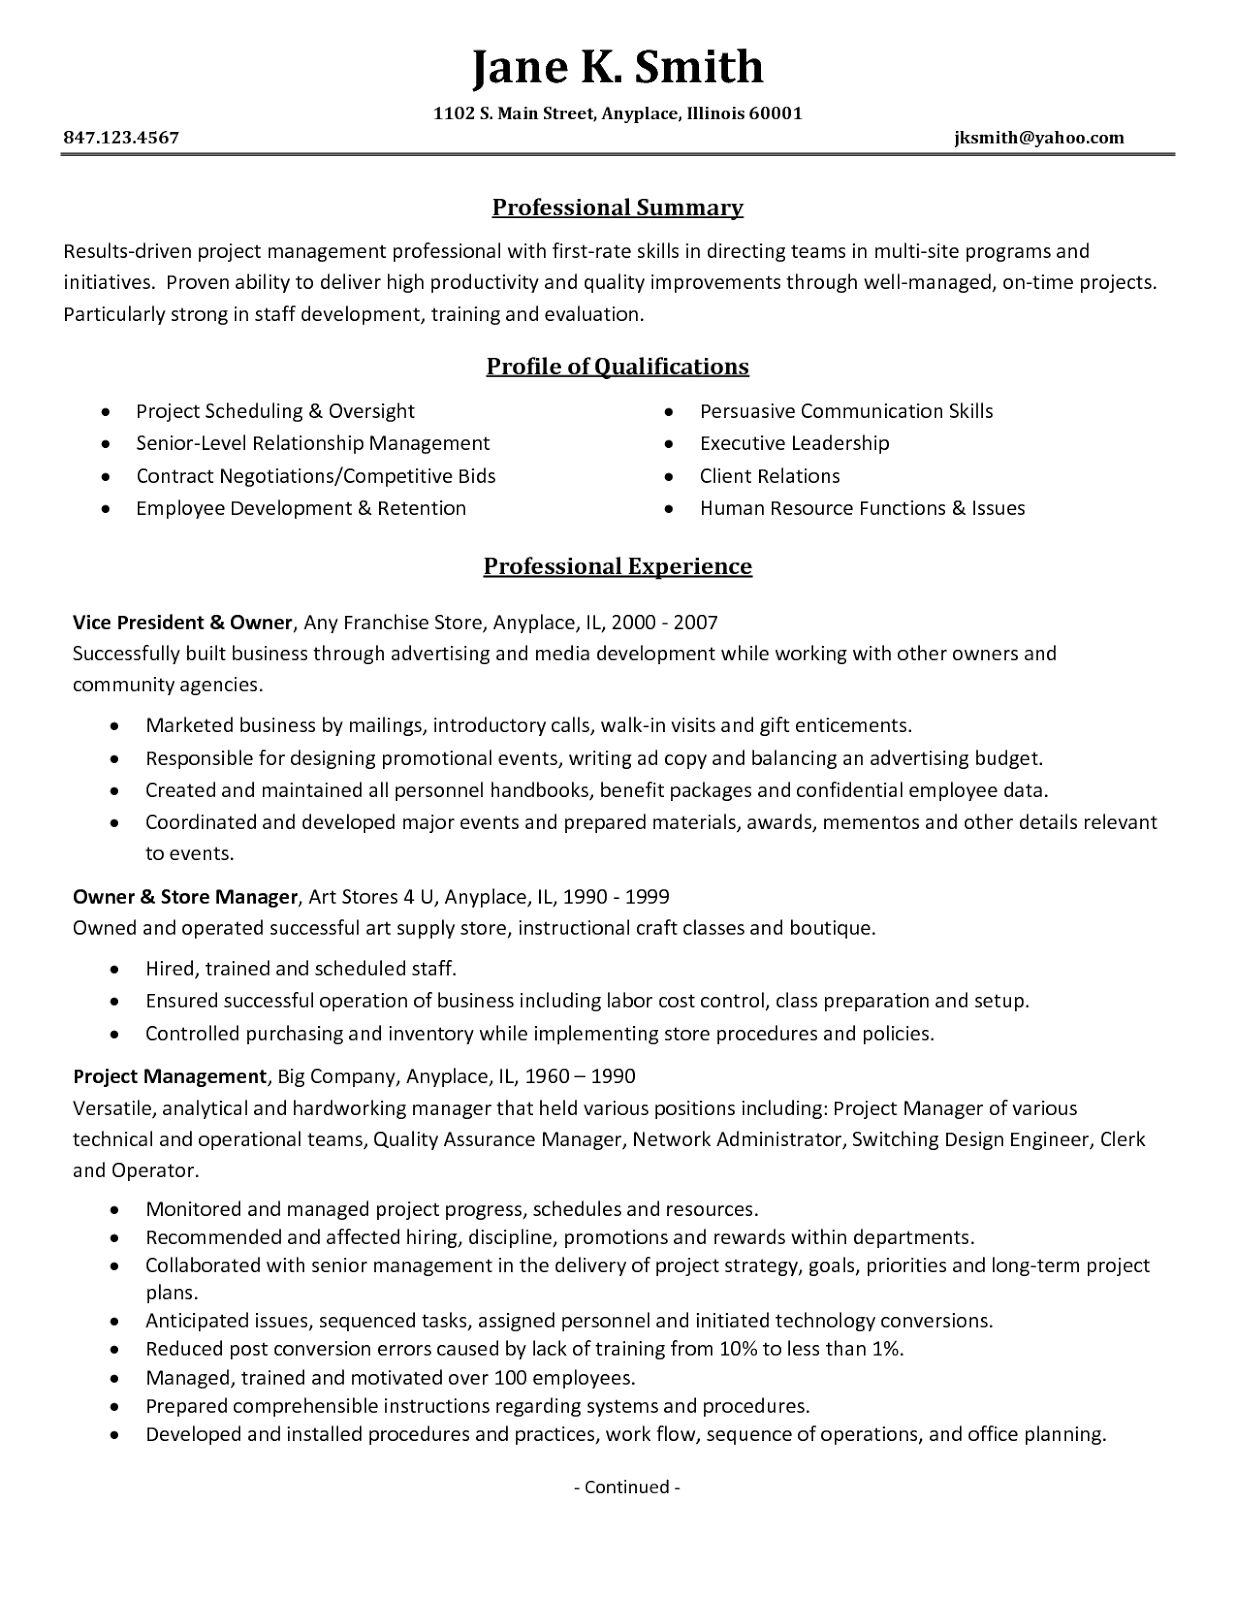 pmp resume examples project management resume samples sample resumes examples and team leadership